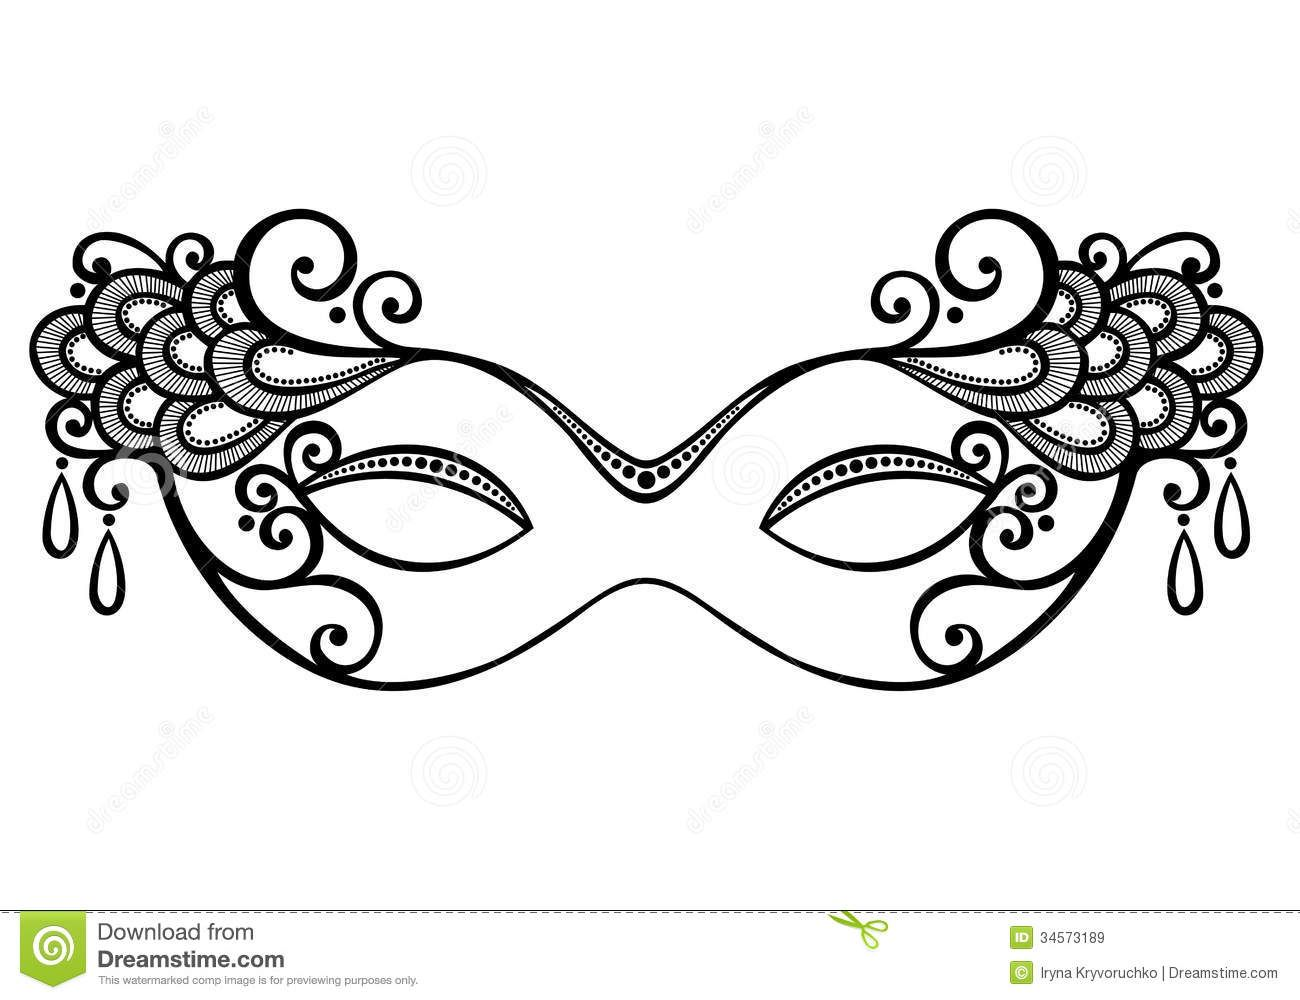 Masquerade Mask Download From Over 44 Million High Quality Stock